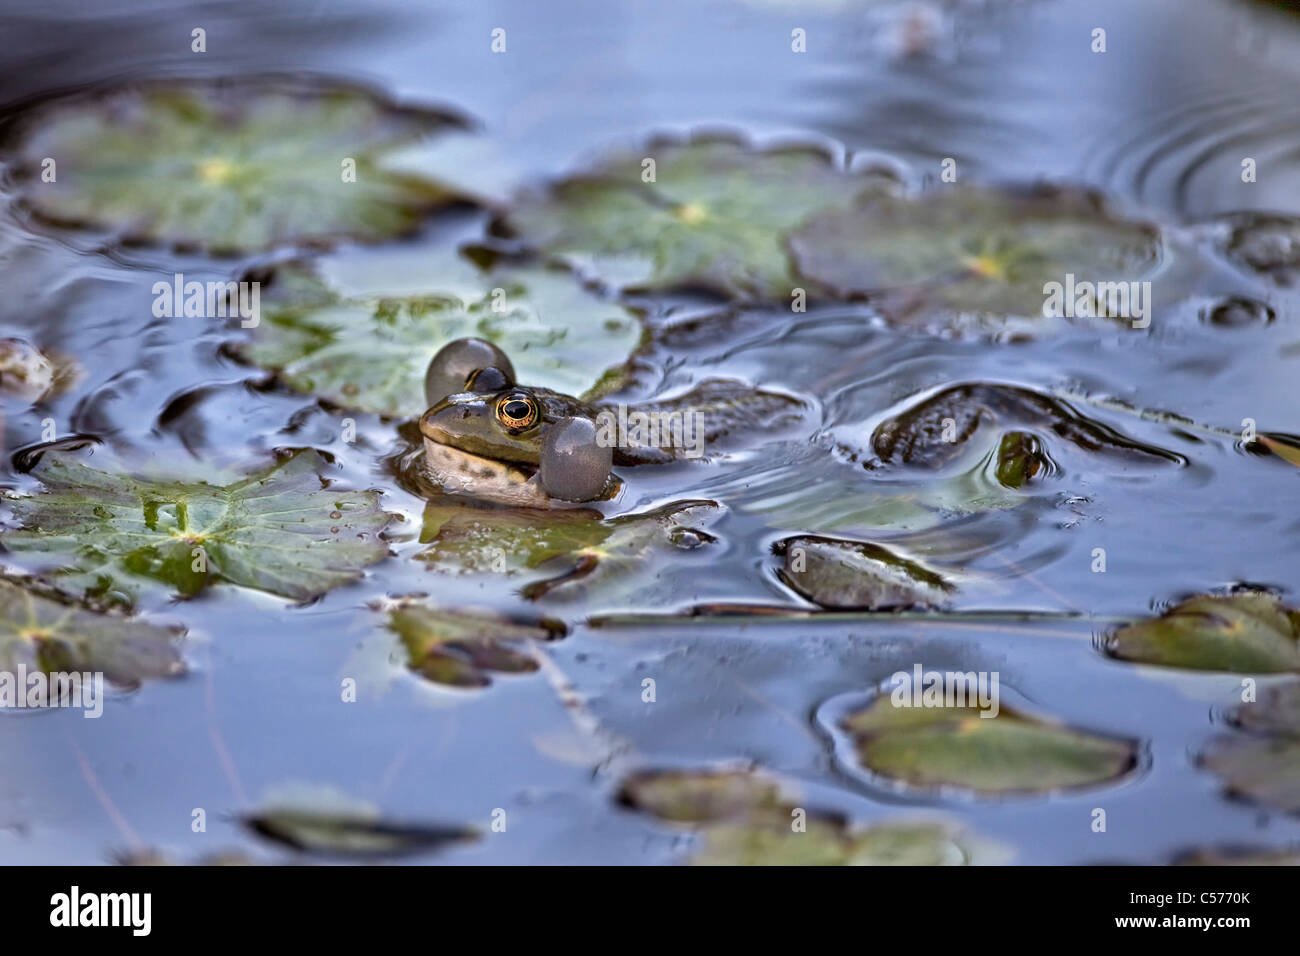 The Netherlands, Blokzijl, Croaking Pool Frog, Pelophylax lessonae. - Stock Image